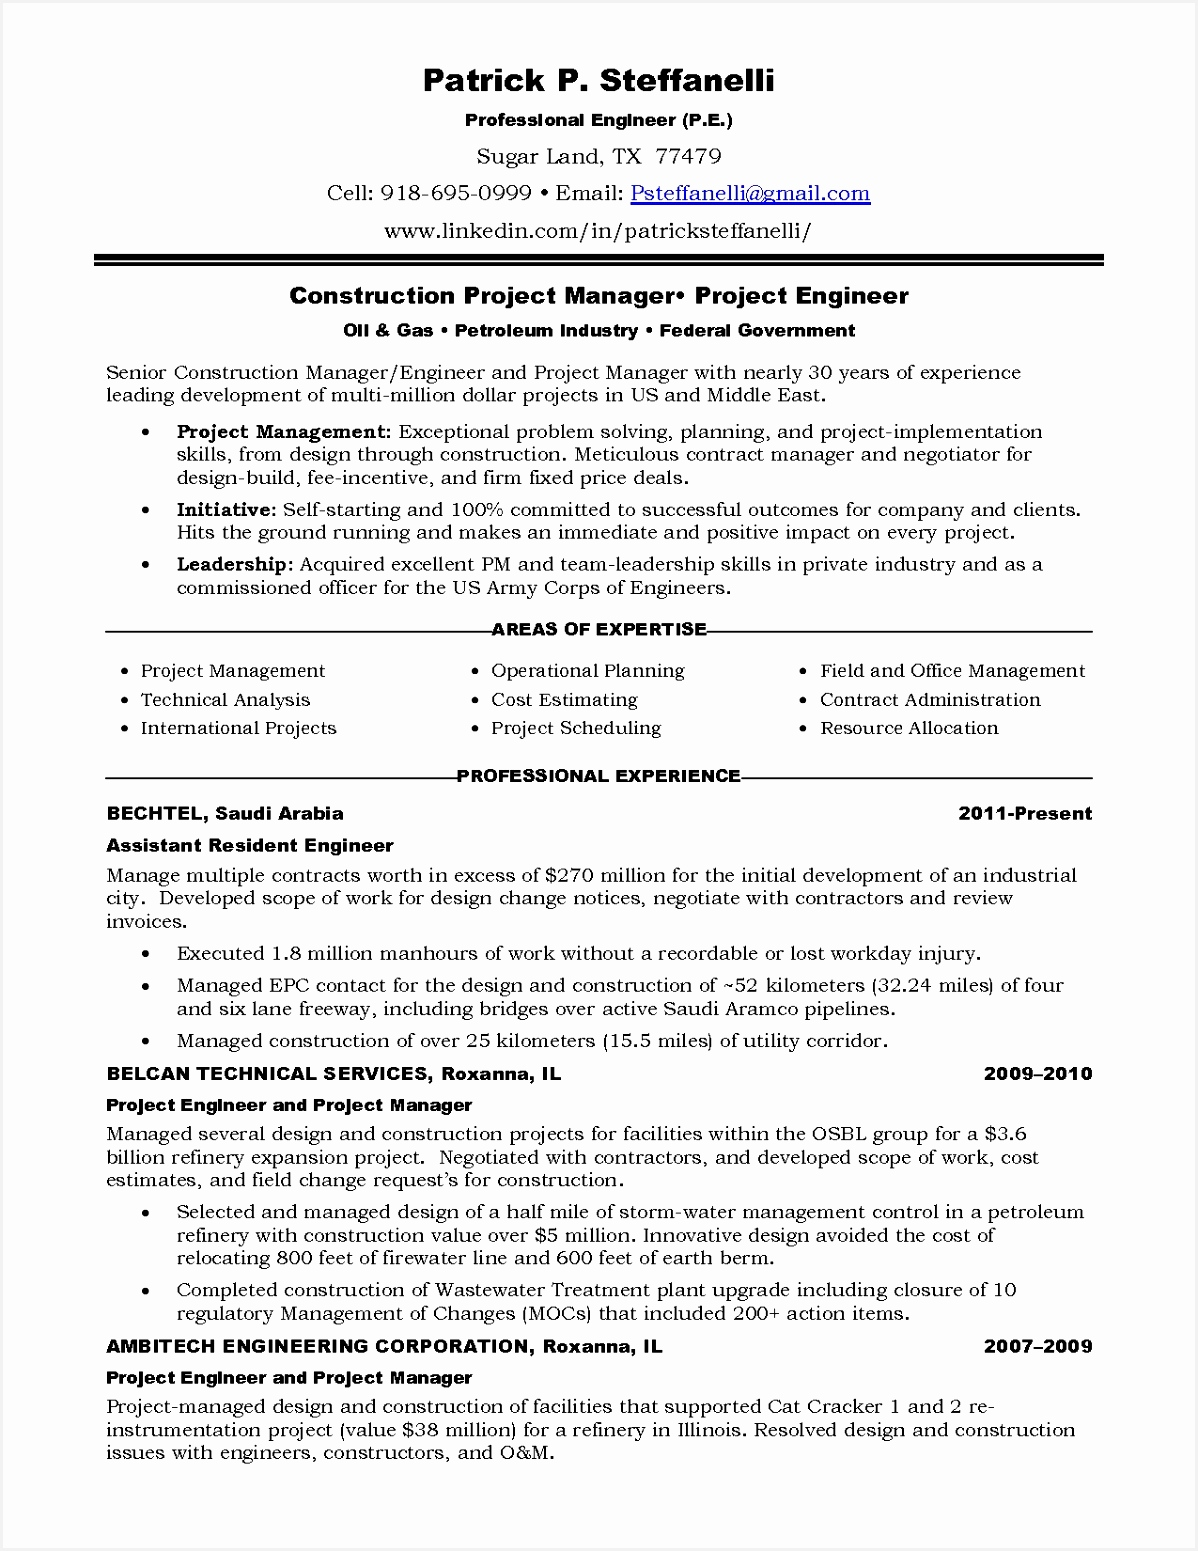 Electrical Engineering Resume Template Ptqow Unique Unique Electrical Engineering Skills Resume Resume Ideas Of Electrical Engineering Resume Template Xvhgb Beautiful Resume Template for software Engineer Unique software Engineer